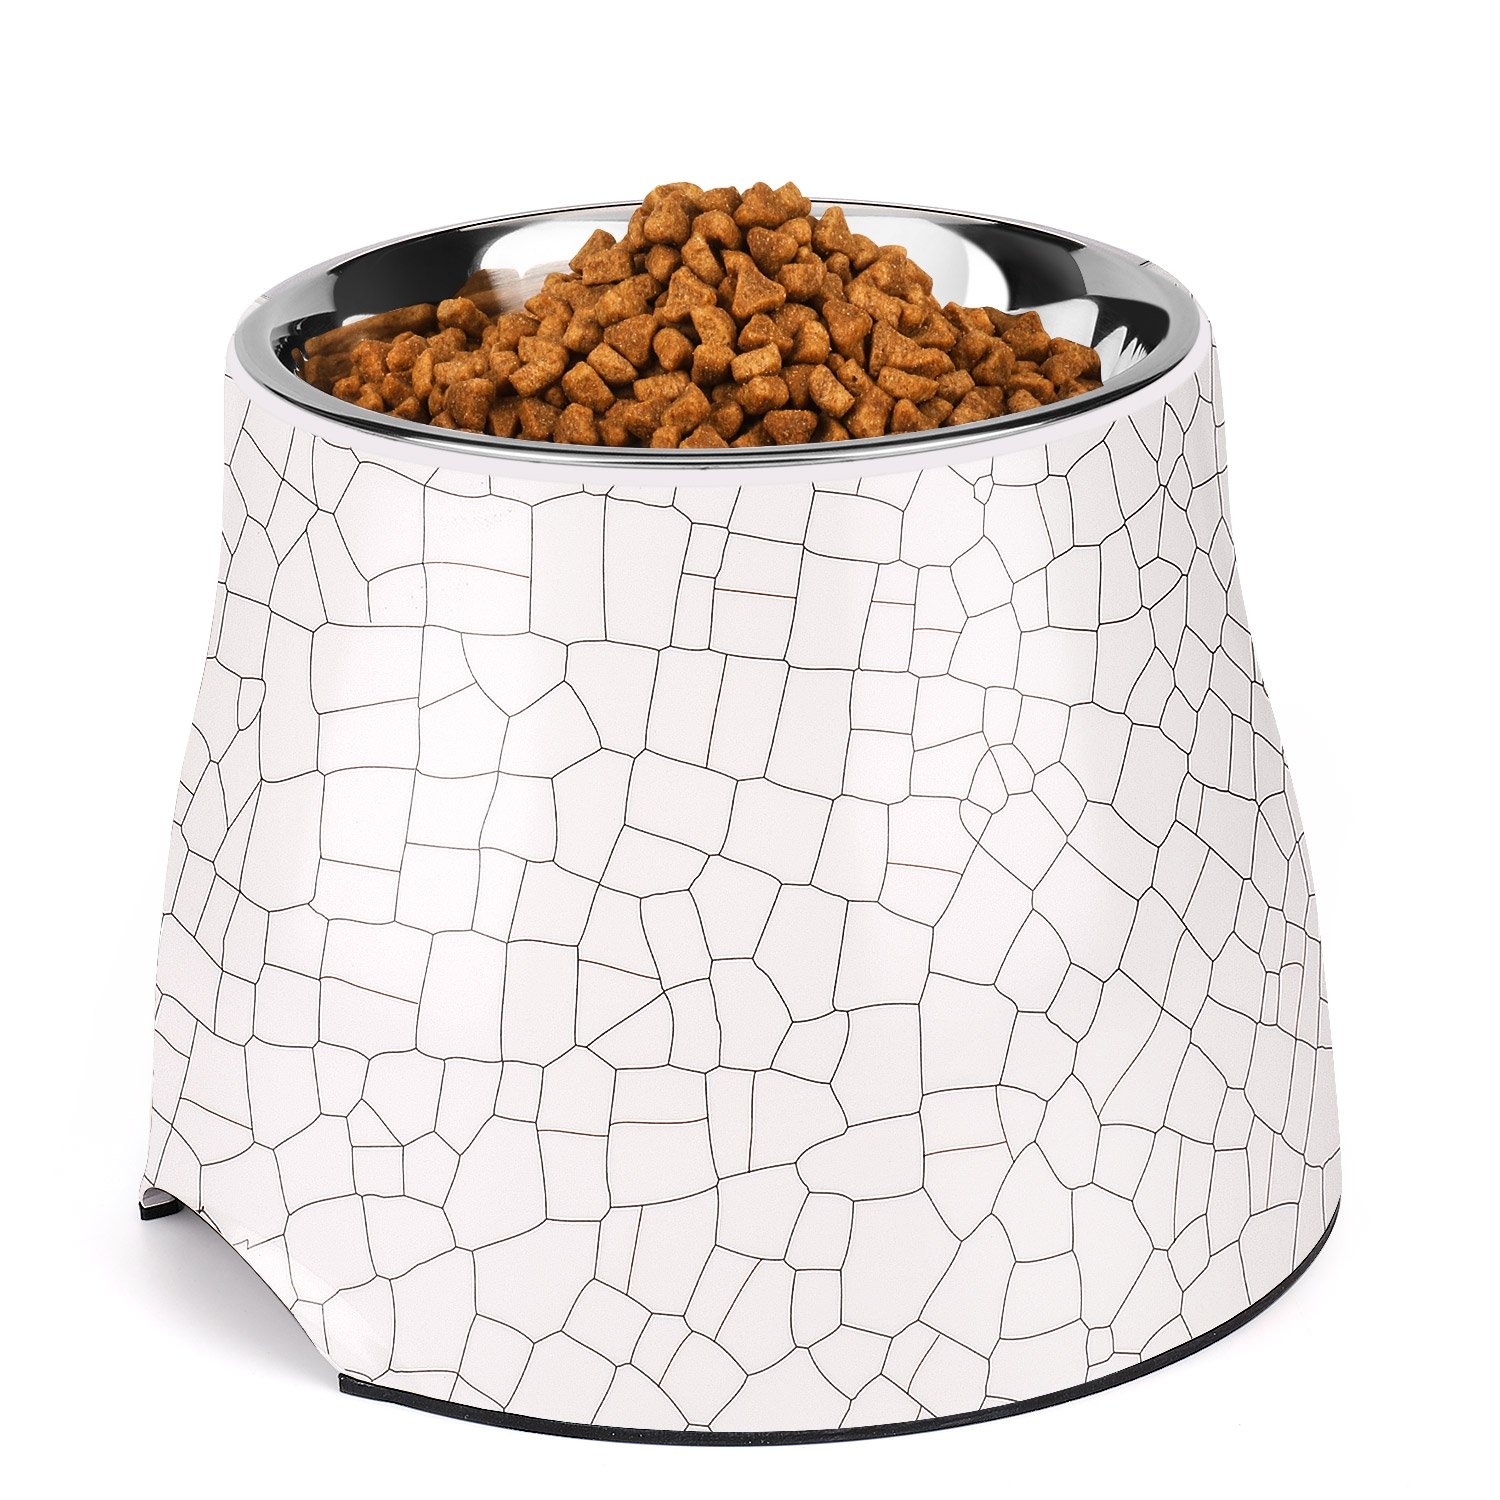 Flexzion Stainless Steel Elevated Dog Bowl Feeder up to 31 Fl Oz - Raised Cat Pet Dish with Removable Food Water Holder Anti-tip Rubber Slip Bottom for Older Medium Breeds (Cracks) by Flexzion